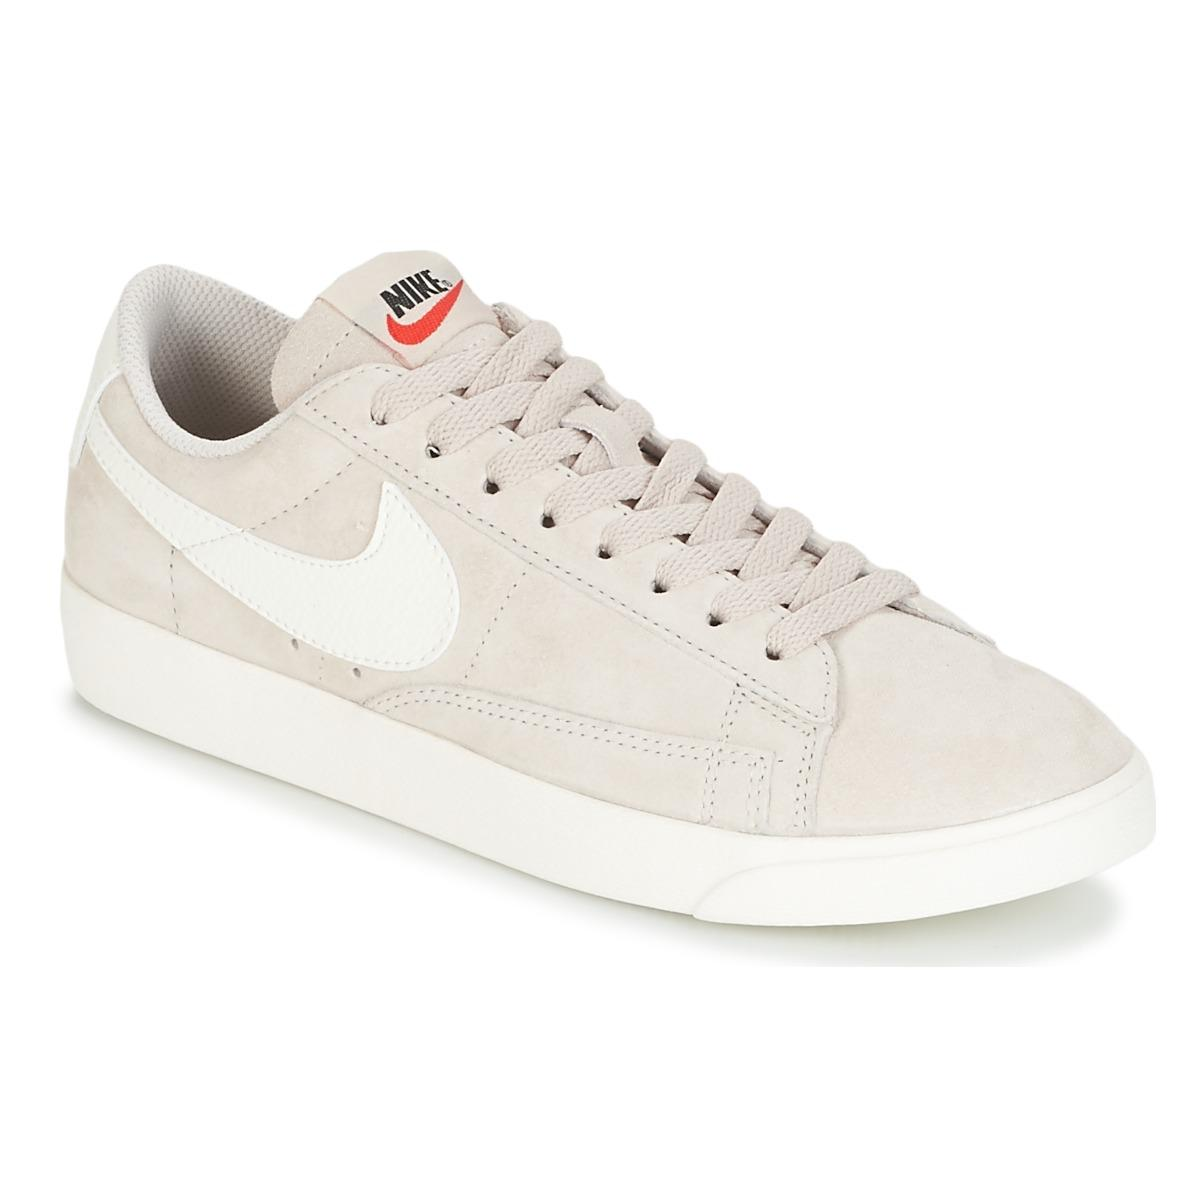 Nike BLAZER LOW SUEDE W women's Shoes (Trainers) in Free Shipping Best Wholesale Cheapest Websites Footaction Cheap Online Low Cost T60jR4c